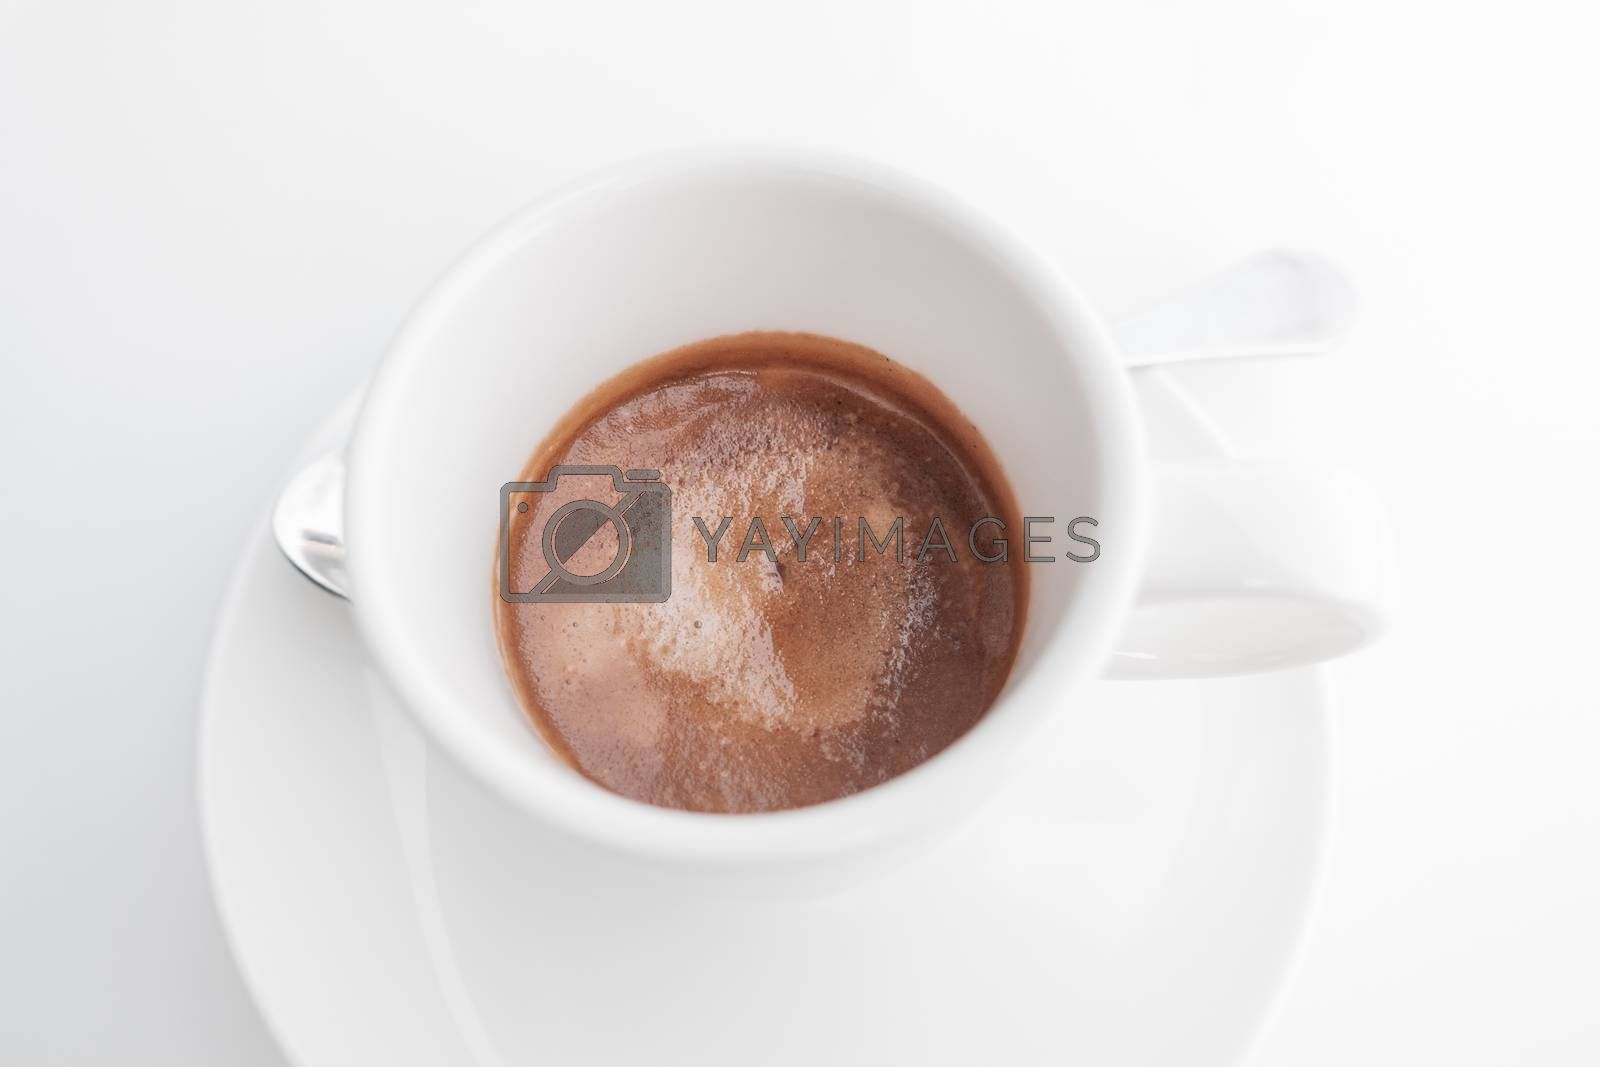 Espresso coffee in white cup on white table. High key style shot.